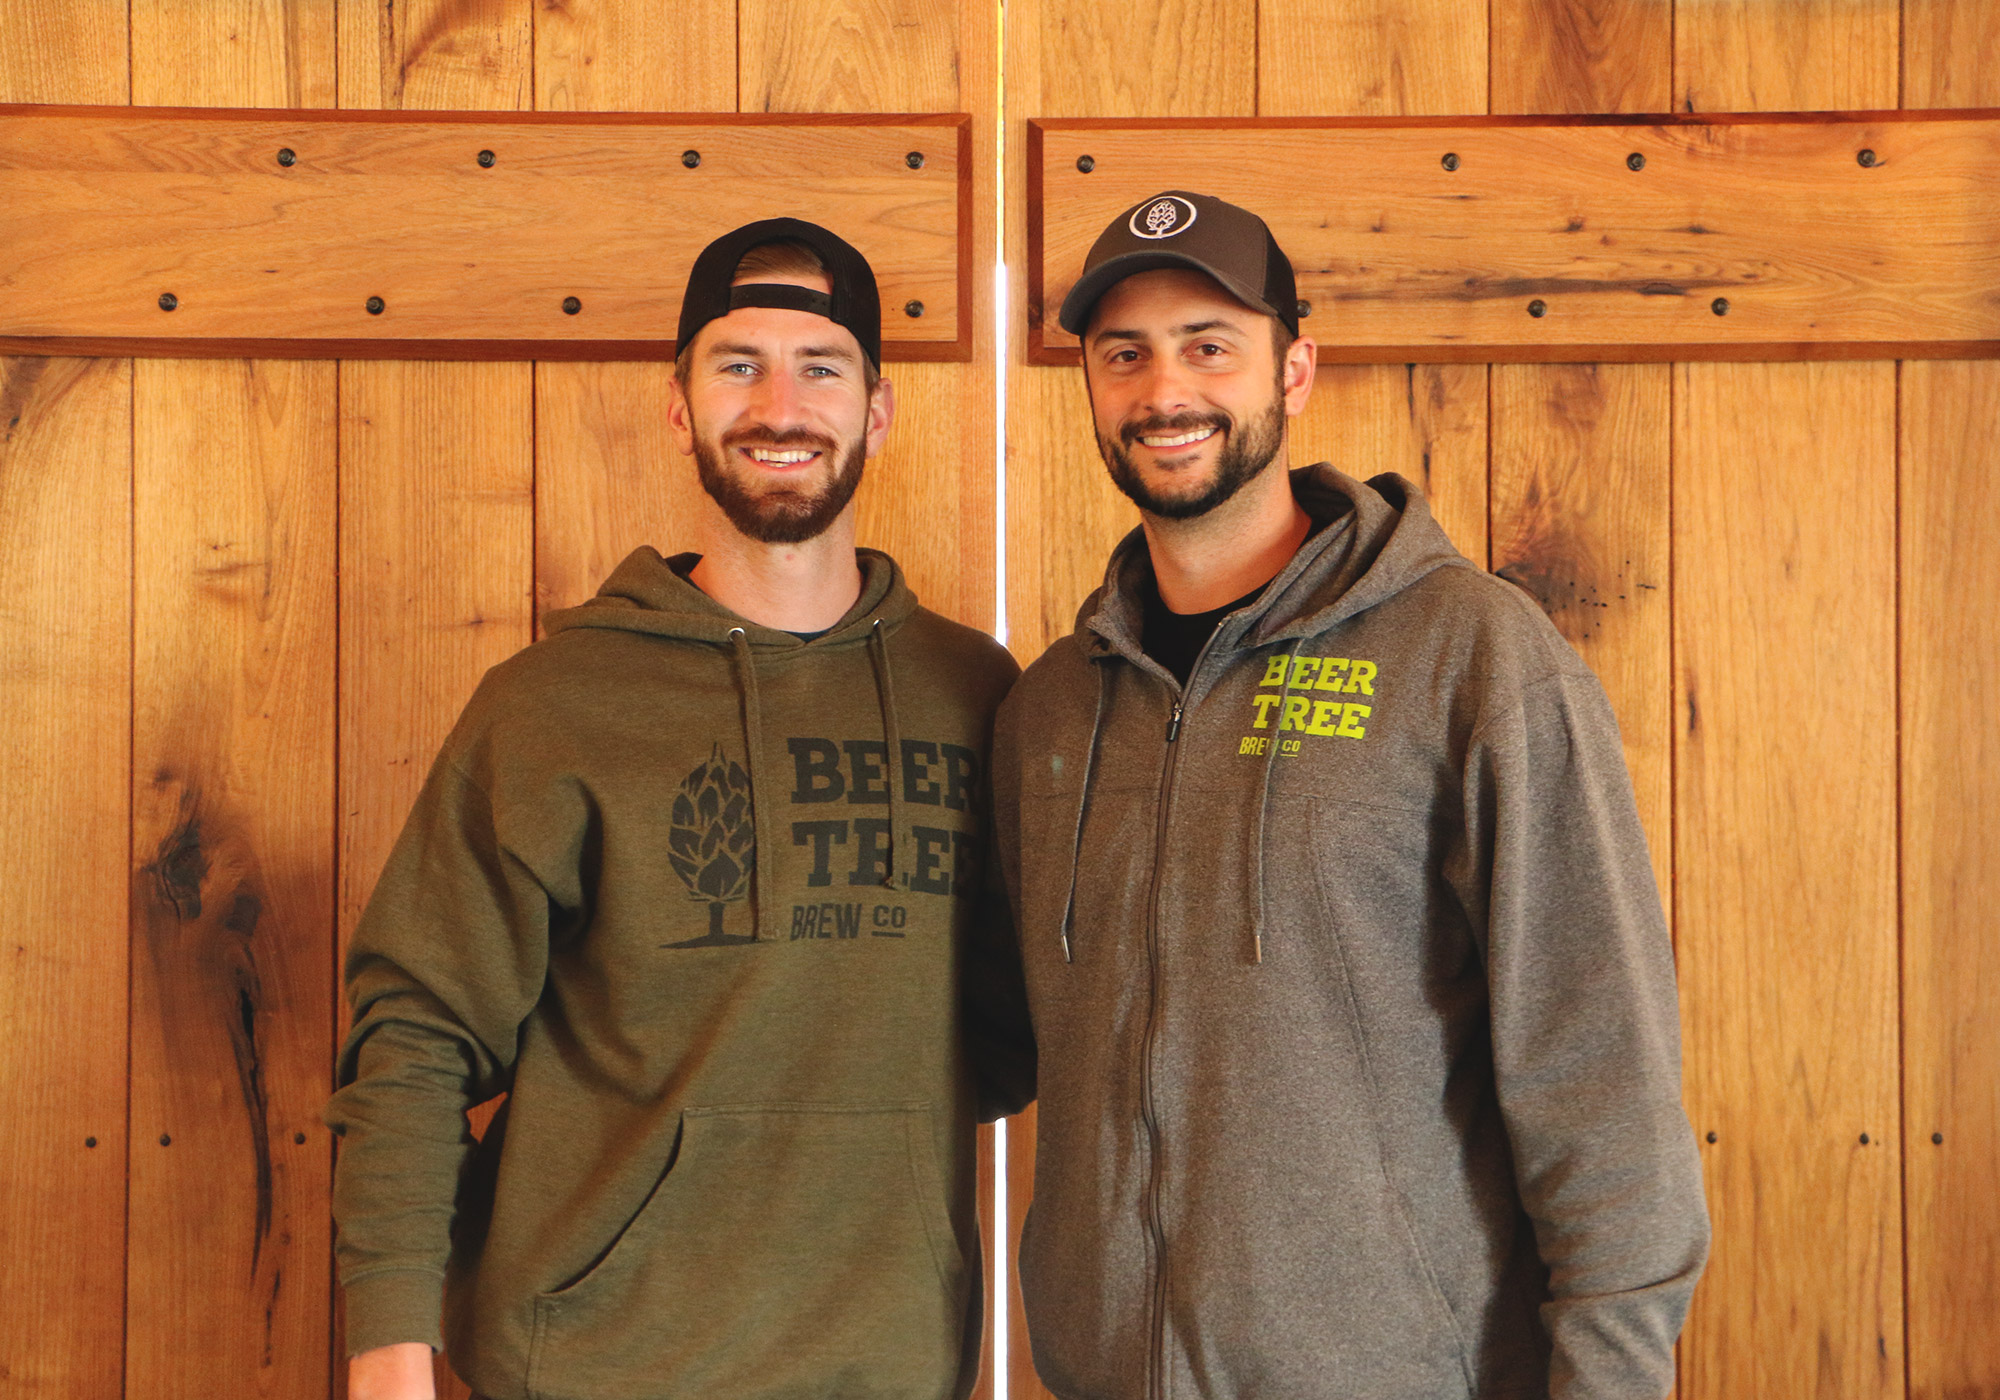 Founders Chris Rhoades and Brendan Harder